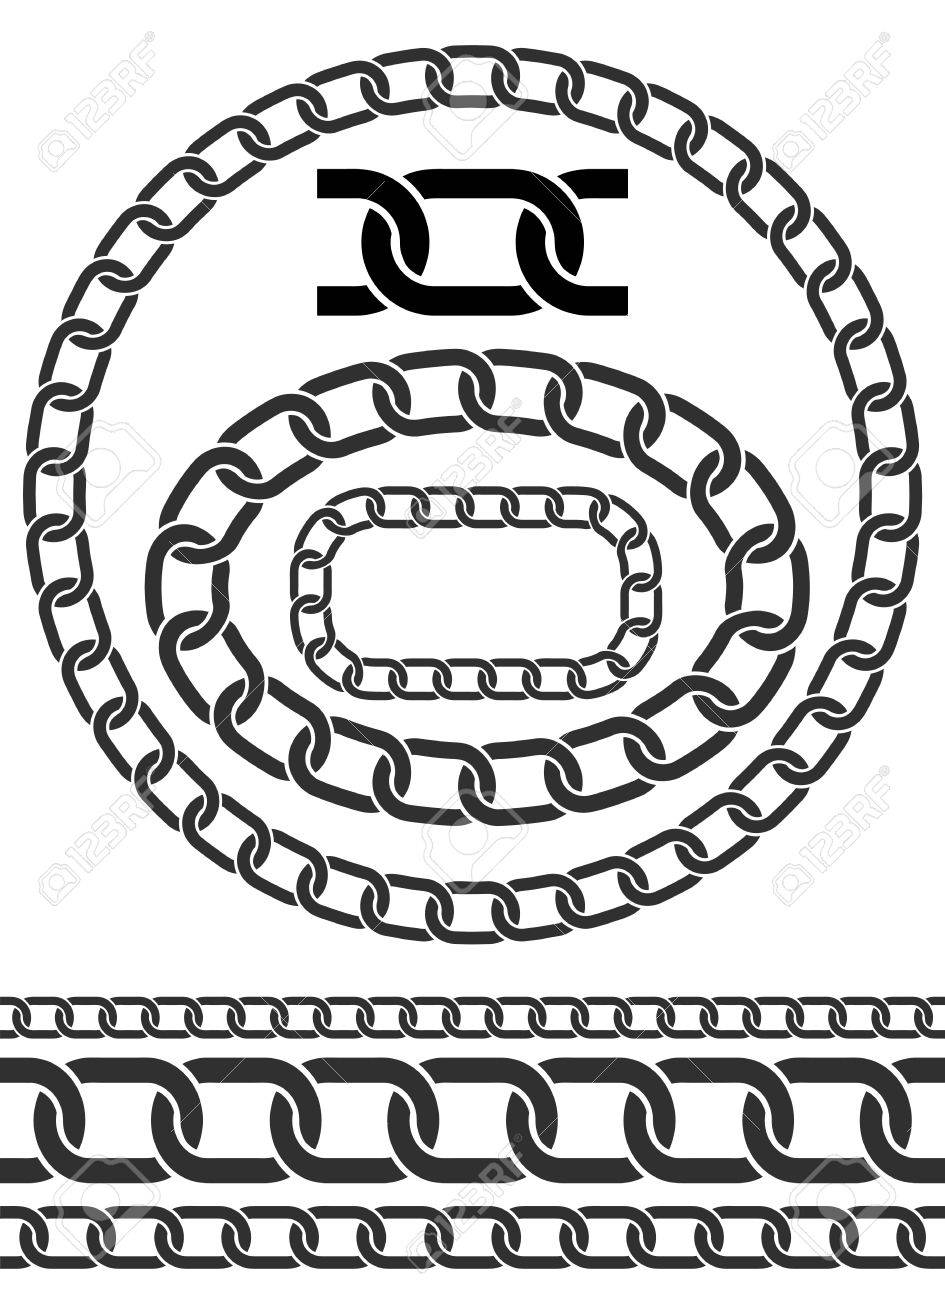 Chains illustration  Chain icons, parts, circles of chains  Pattern